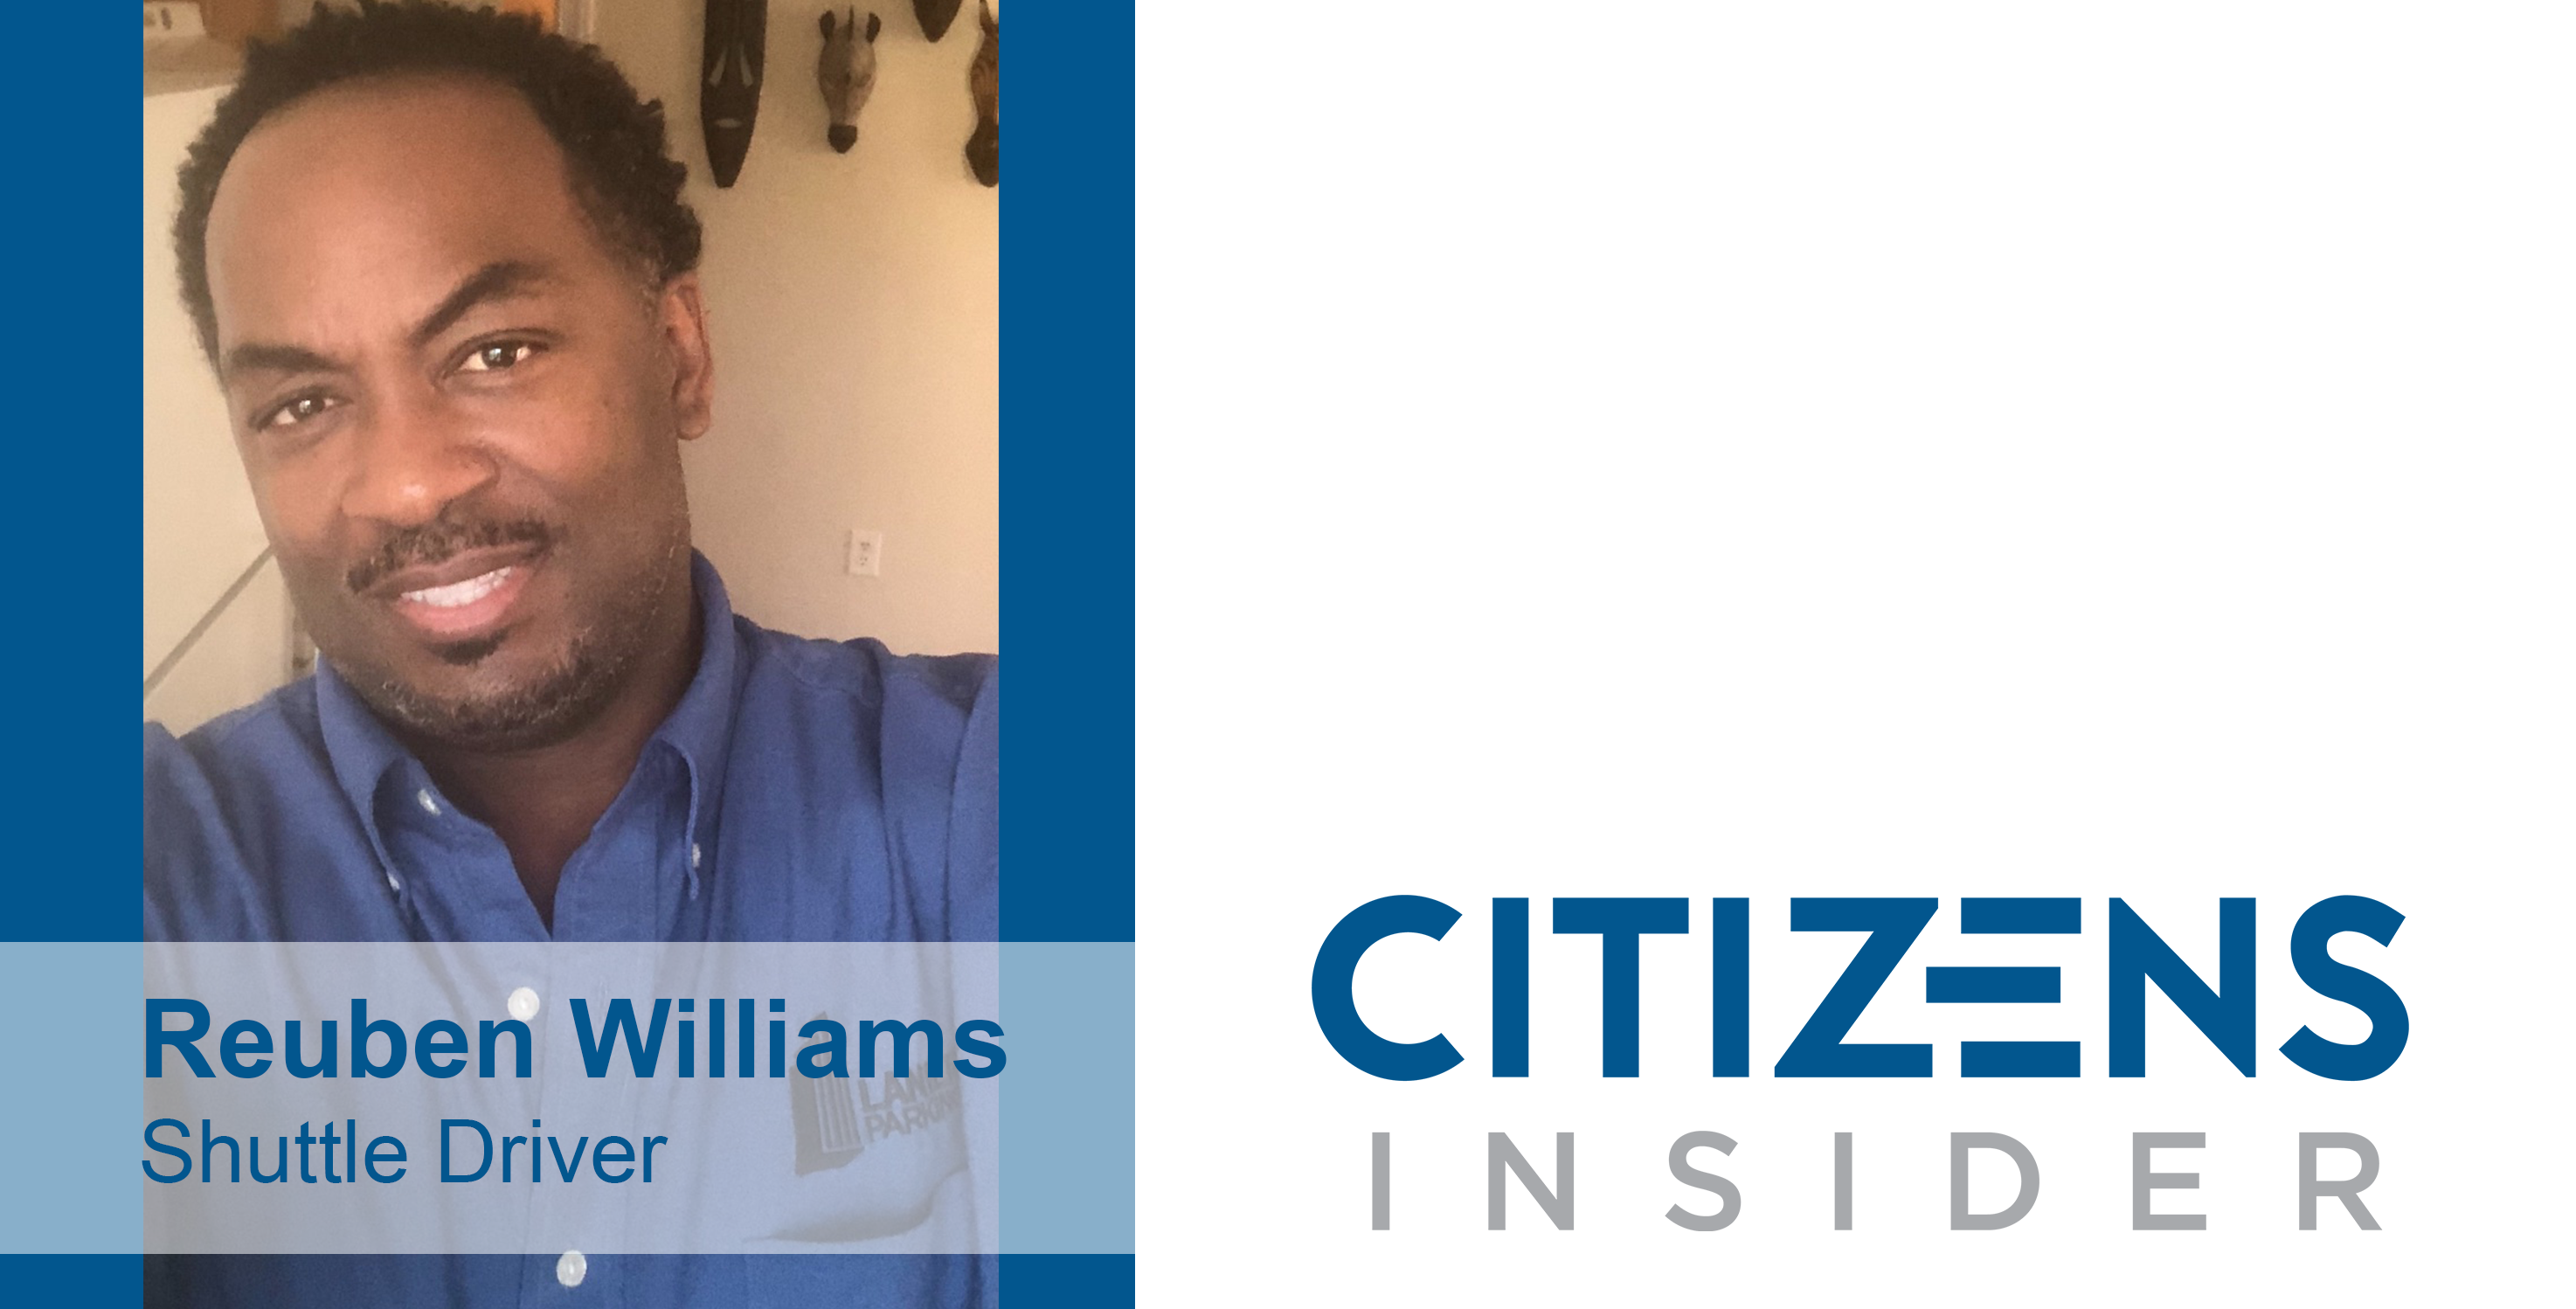 Citizens Insider: Reuben Williams